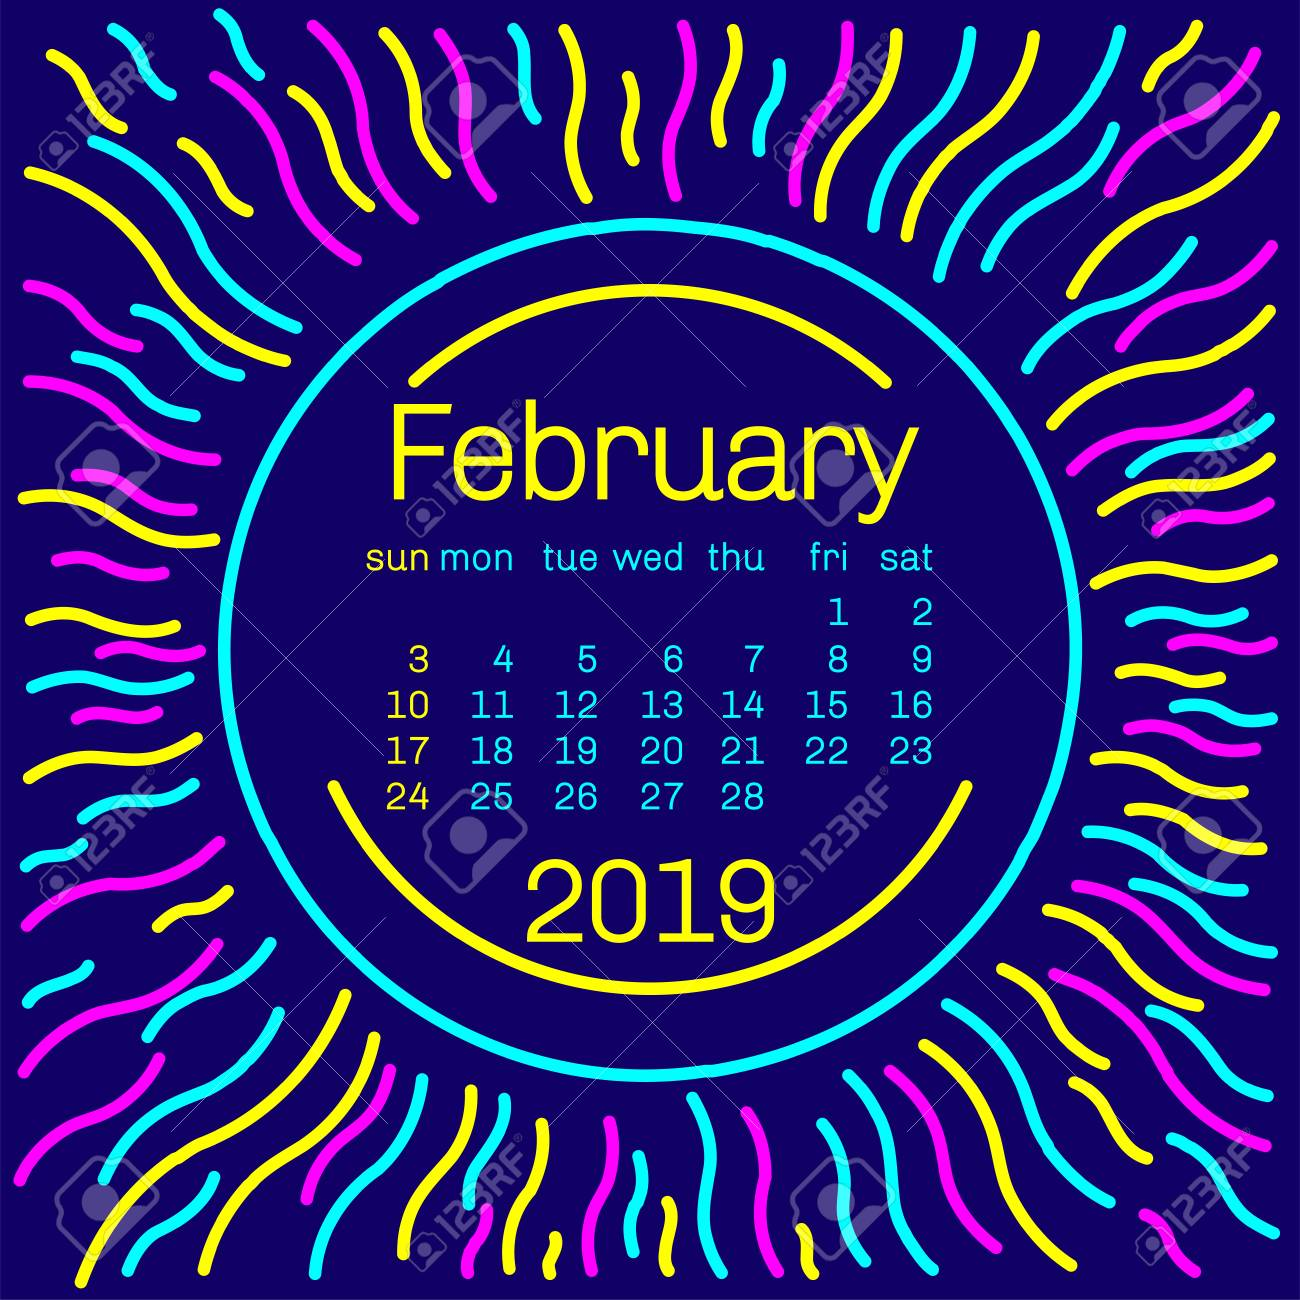 Music Calendar Memphis February 2019 2019. February Calendar Page In Memphis Style Poster For Concept